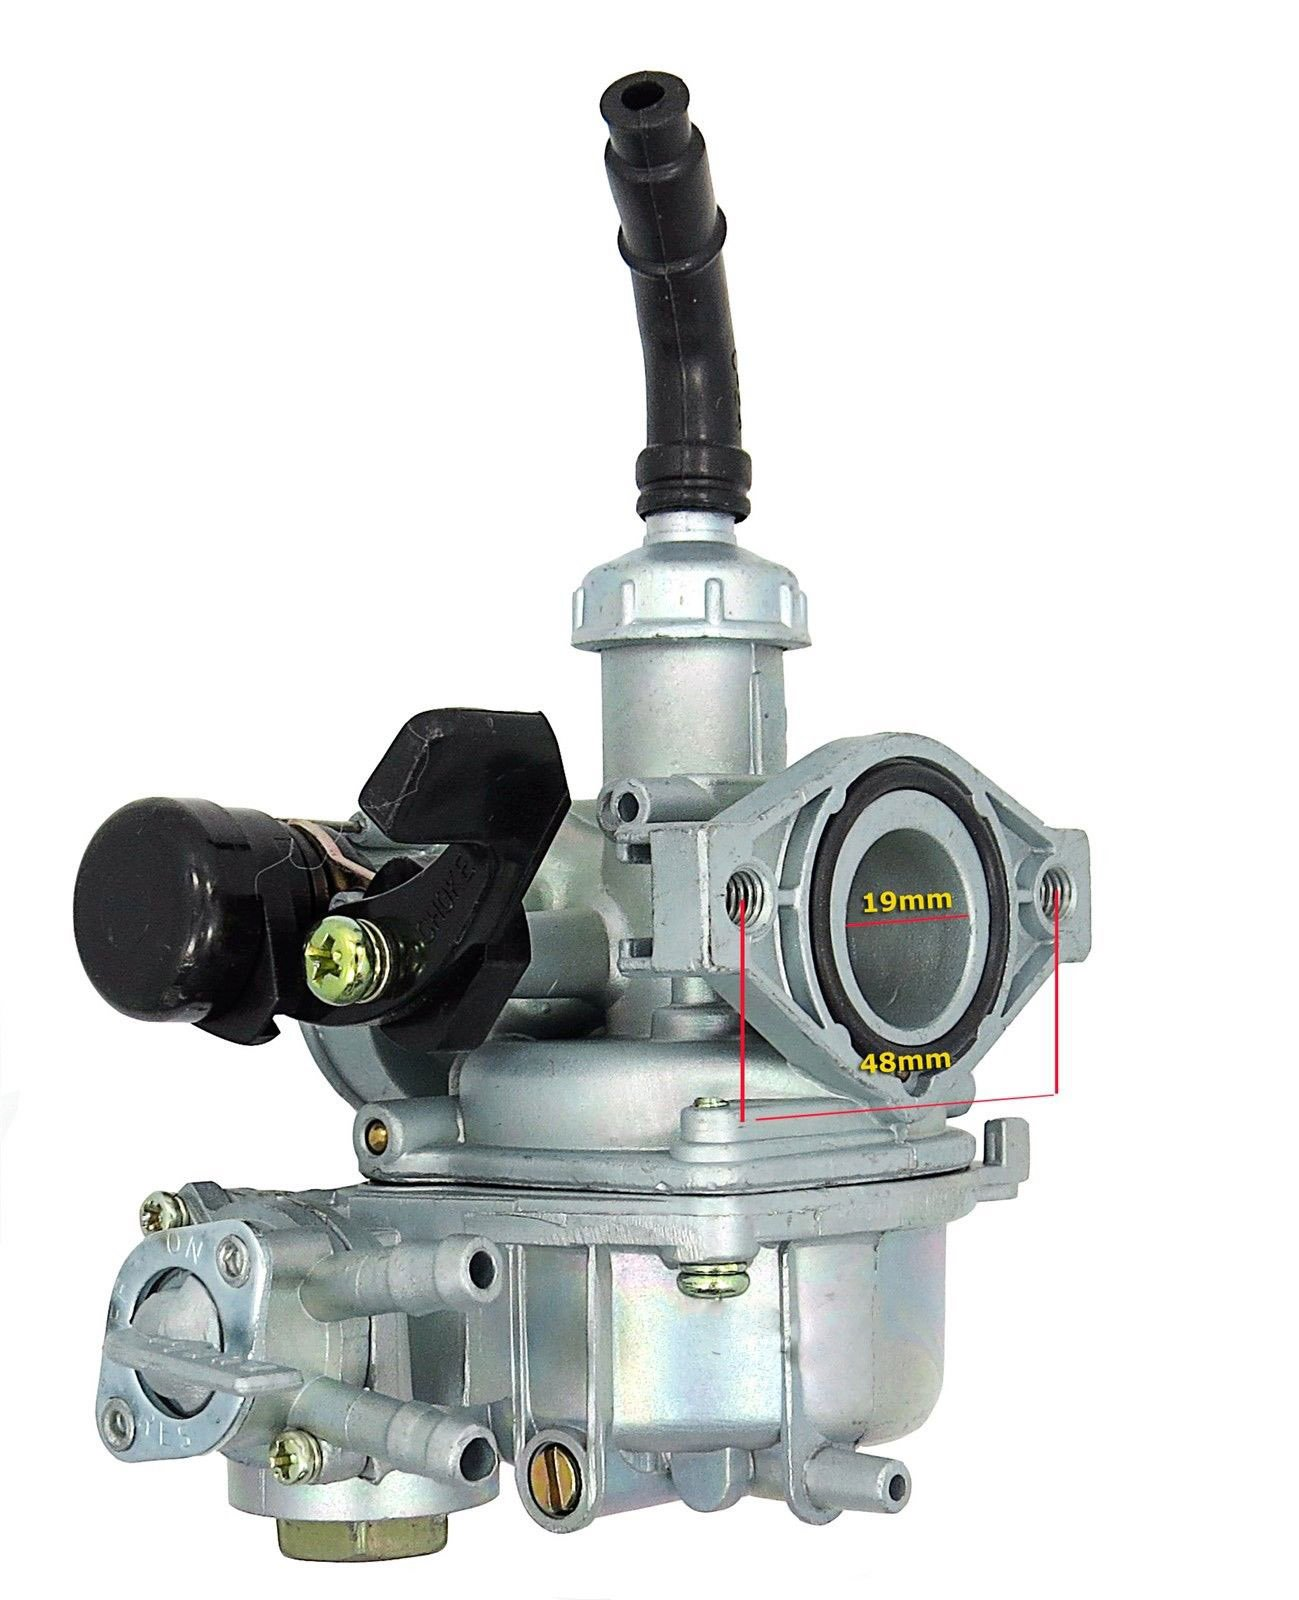 Cheap Ct90 Parts Find Deals On Line At Alibabacom 1970 Honda Ct70 Engine Get Quotations Sunco Carburetor For St70 St90 Trail Bike Carb